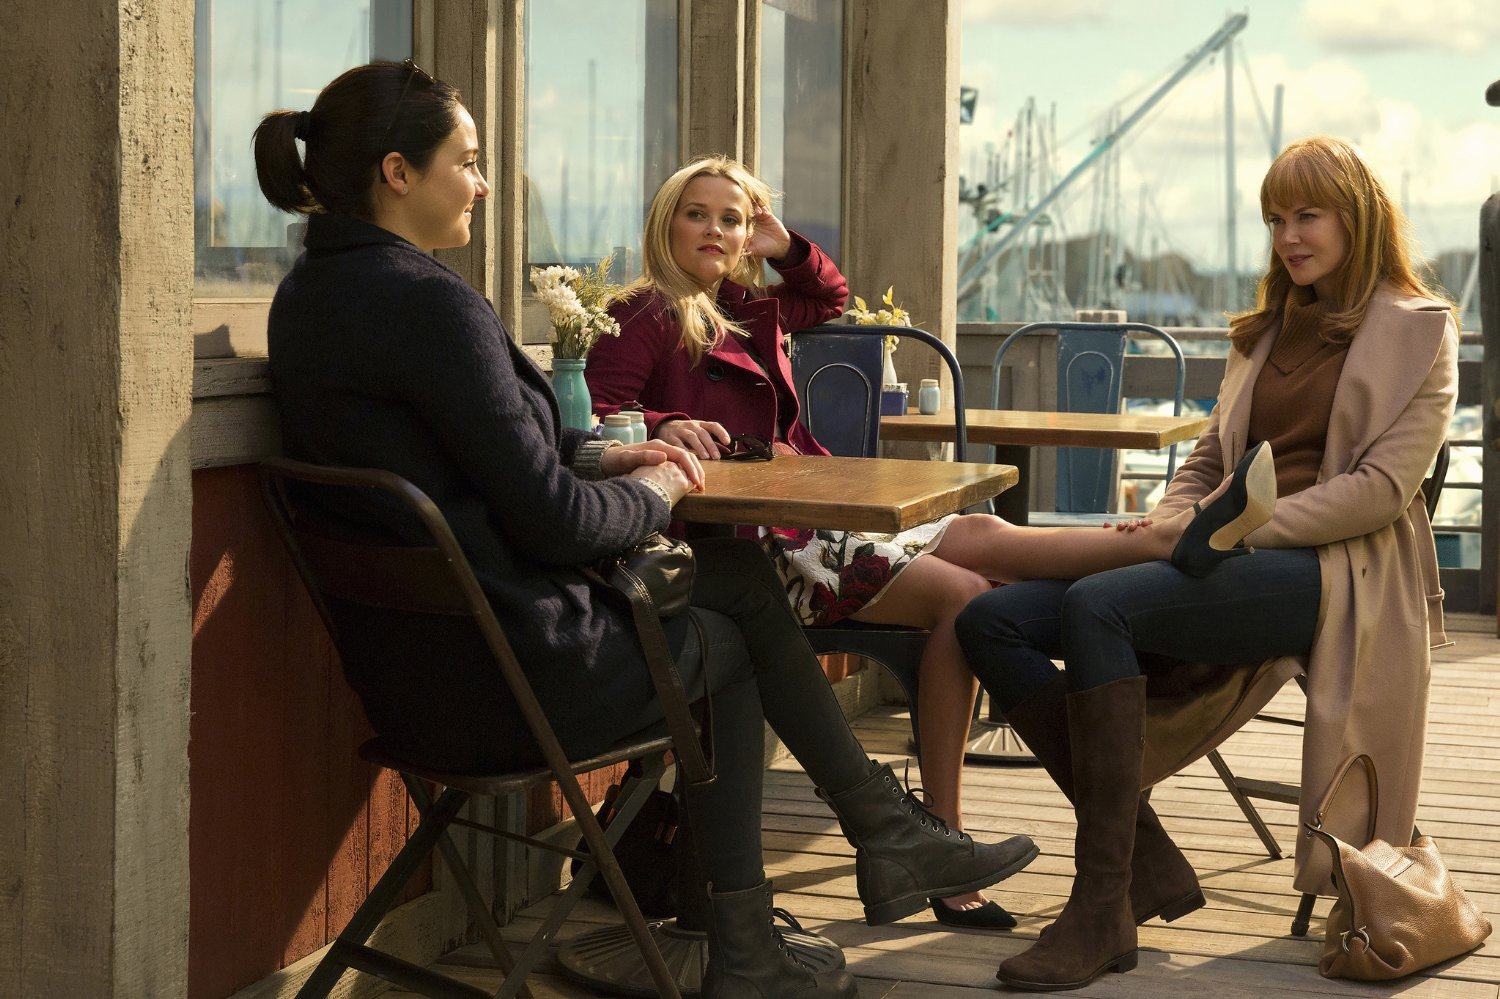 Will 'Big Little Lies' Have a Second Season? What Would Season 2 Be?